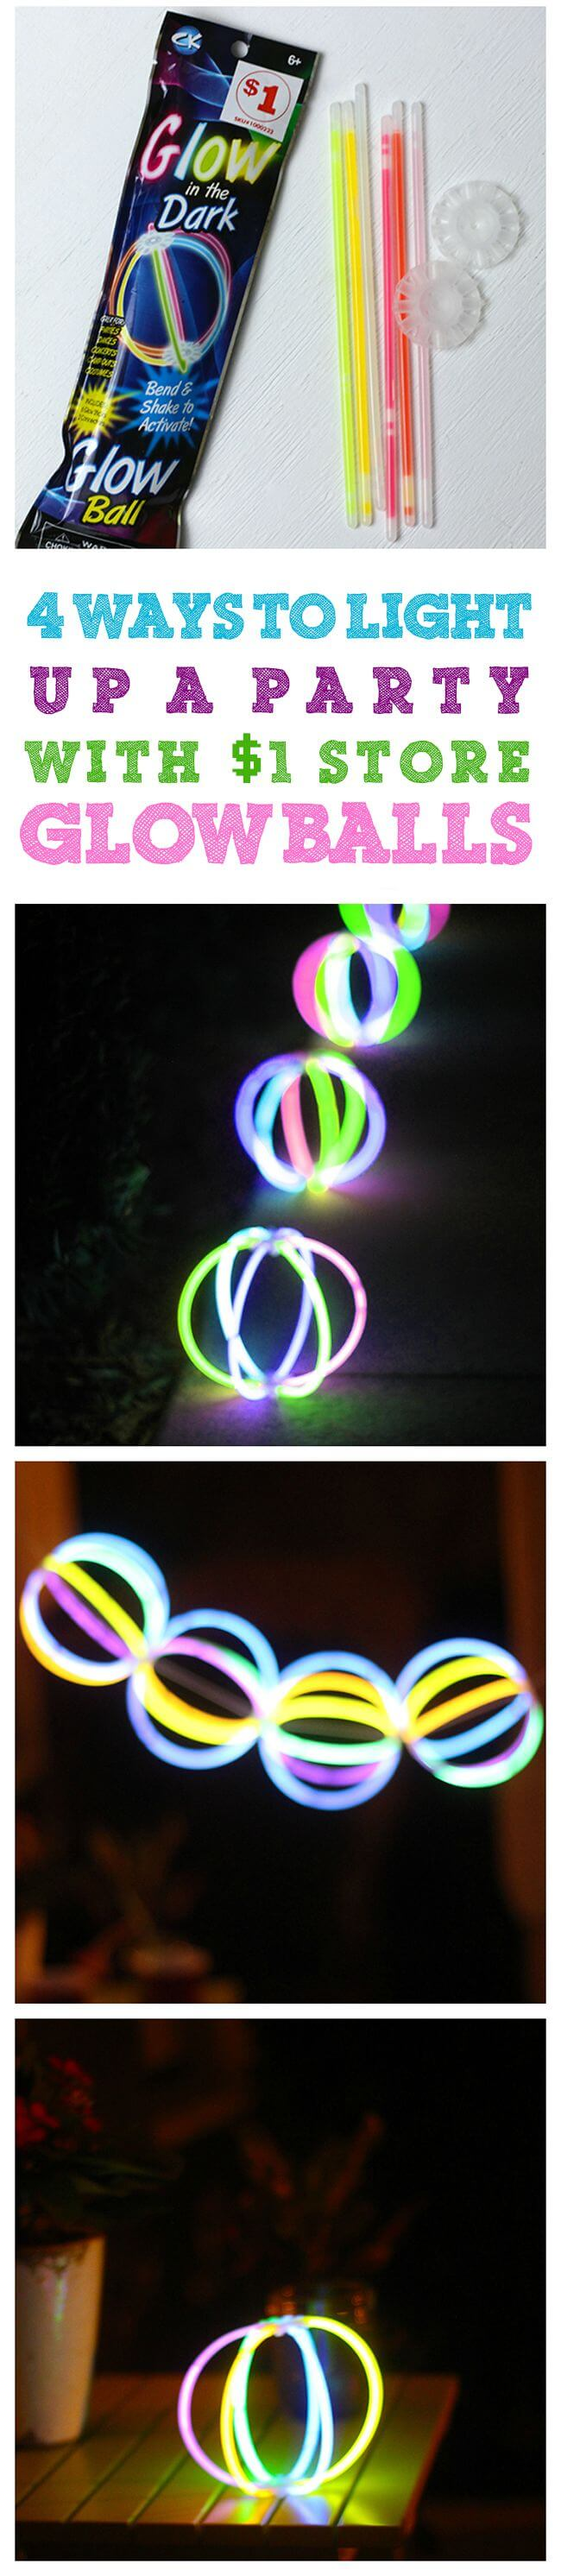 String Together Some Glow Balls Using Glow Sticks